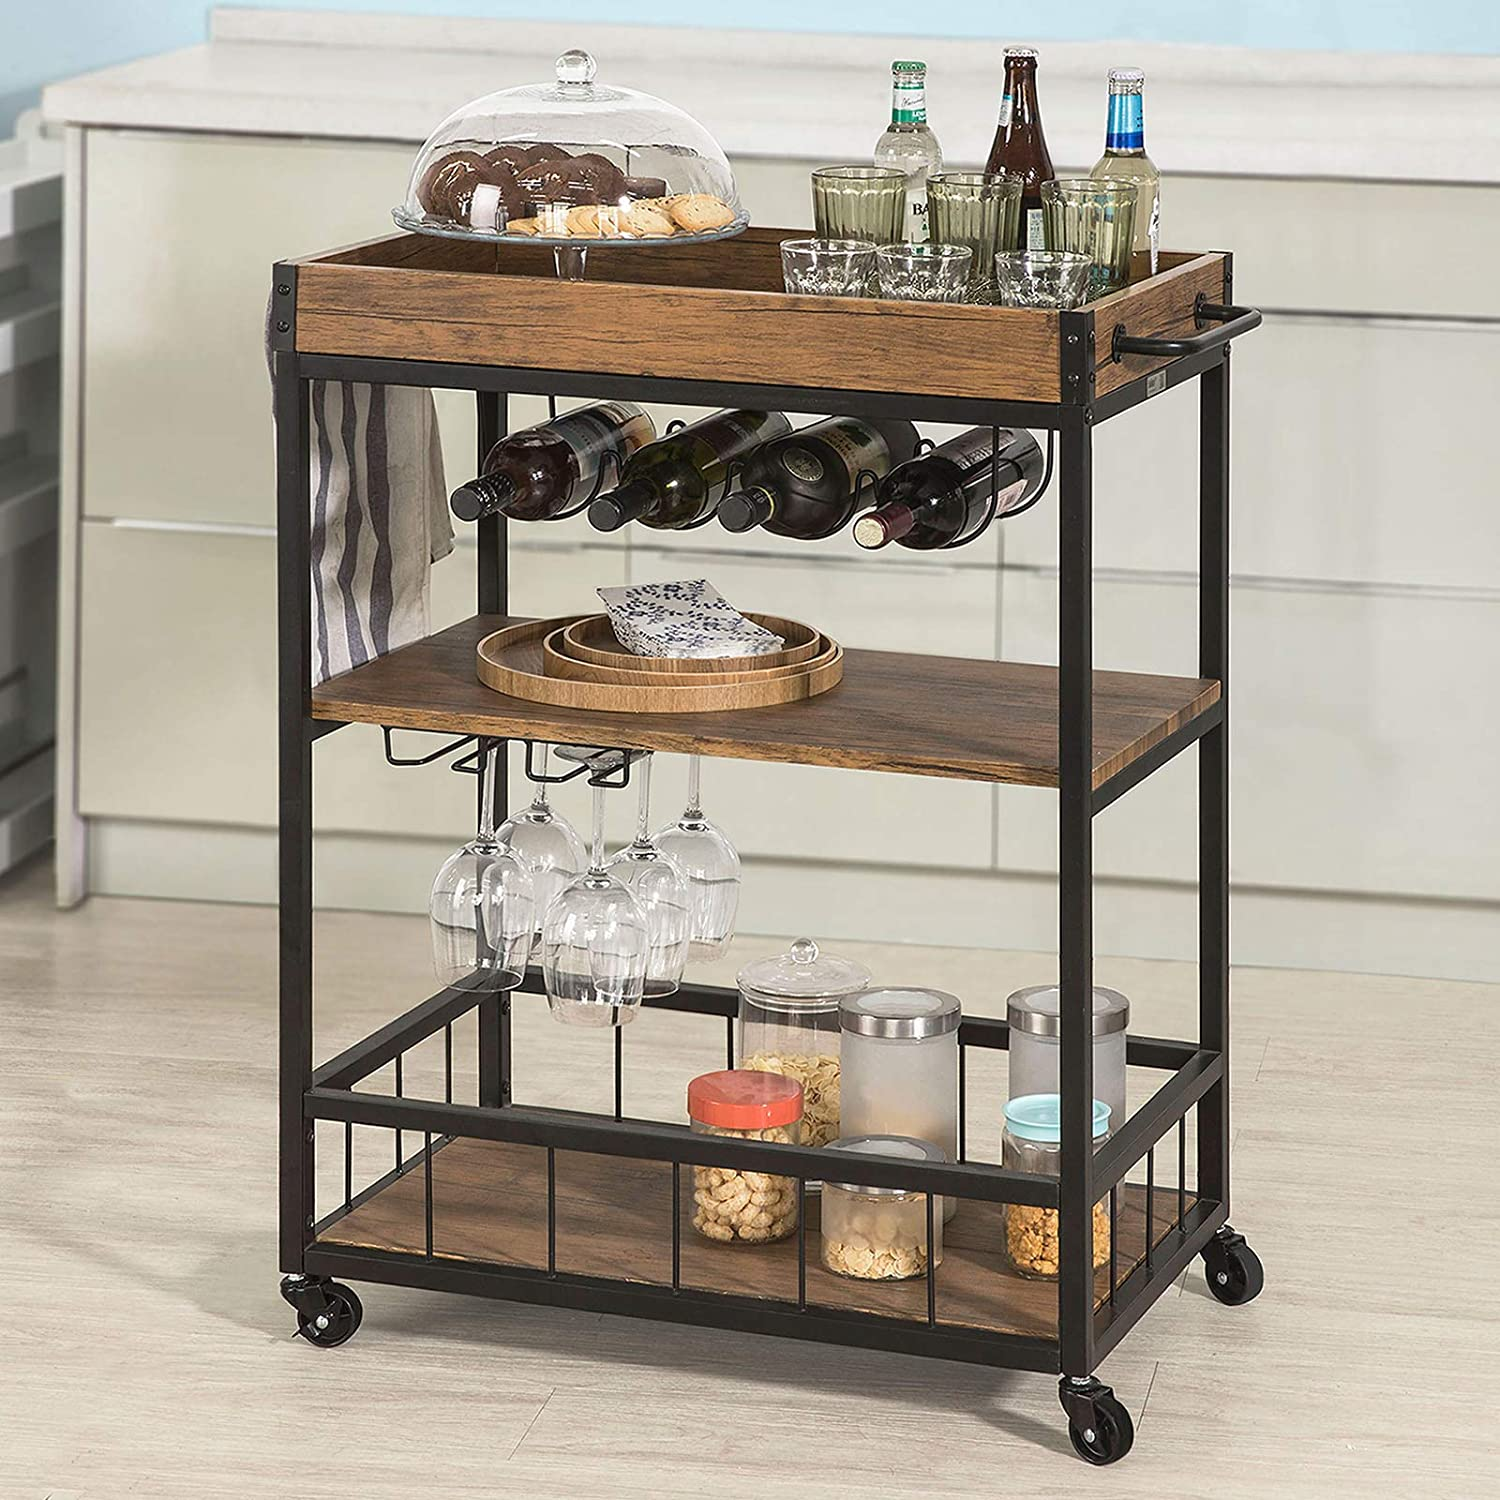 The Best Bar Carts 2020 Cocktail Carts For Dining Room Decor Rolling Stone